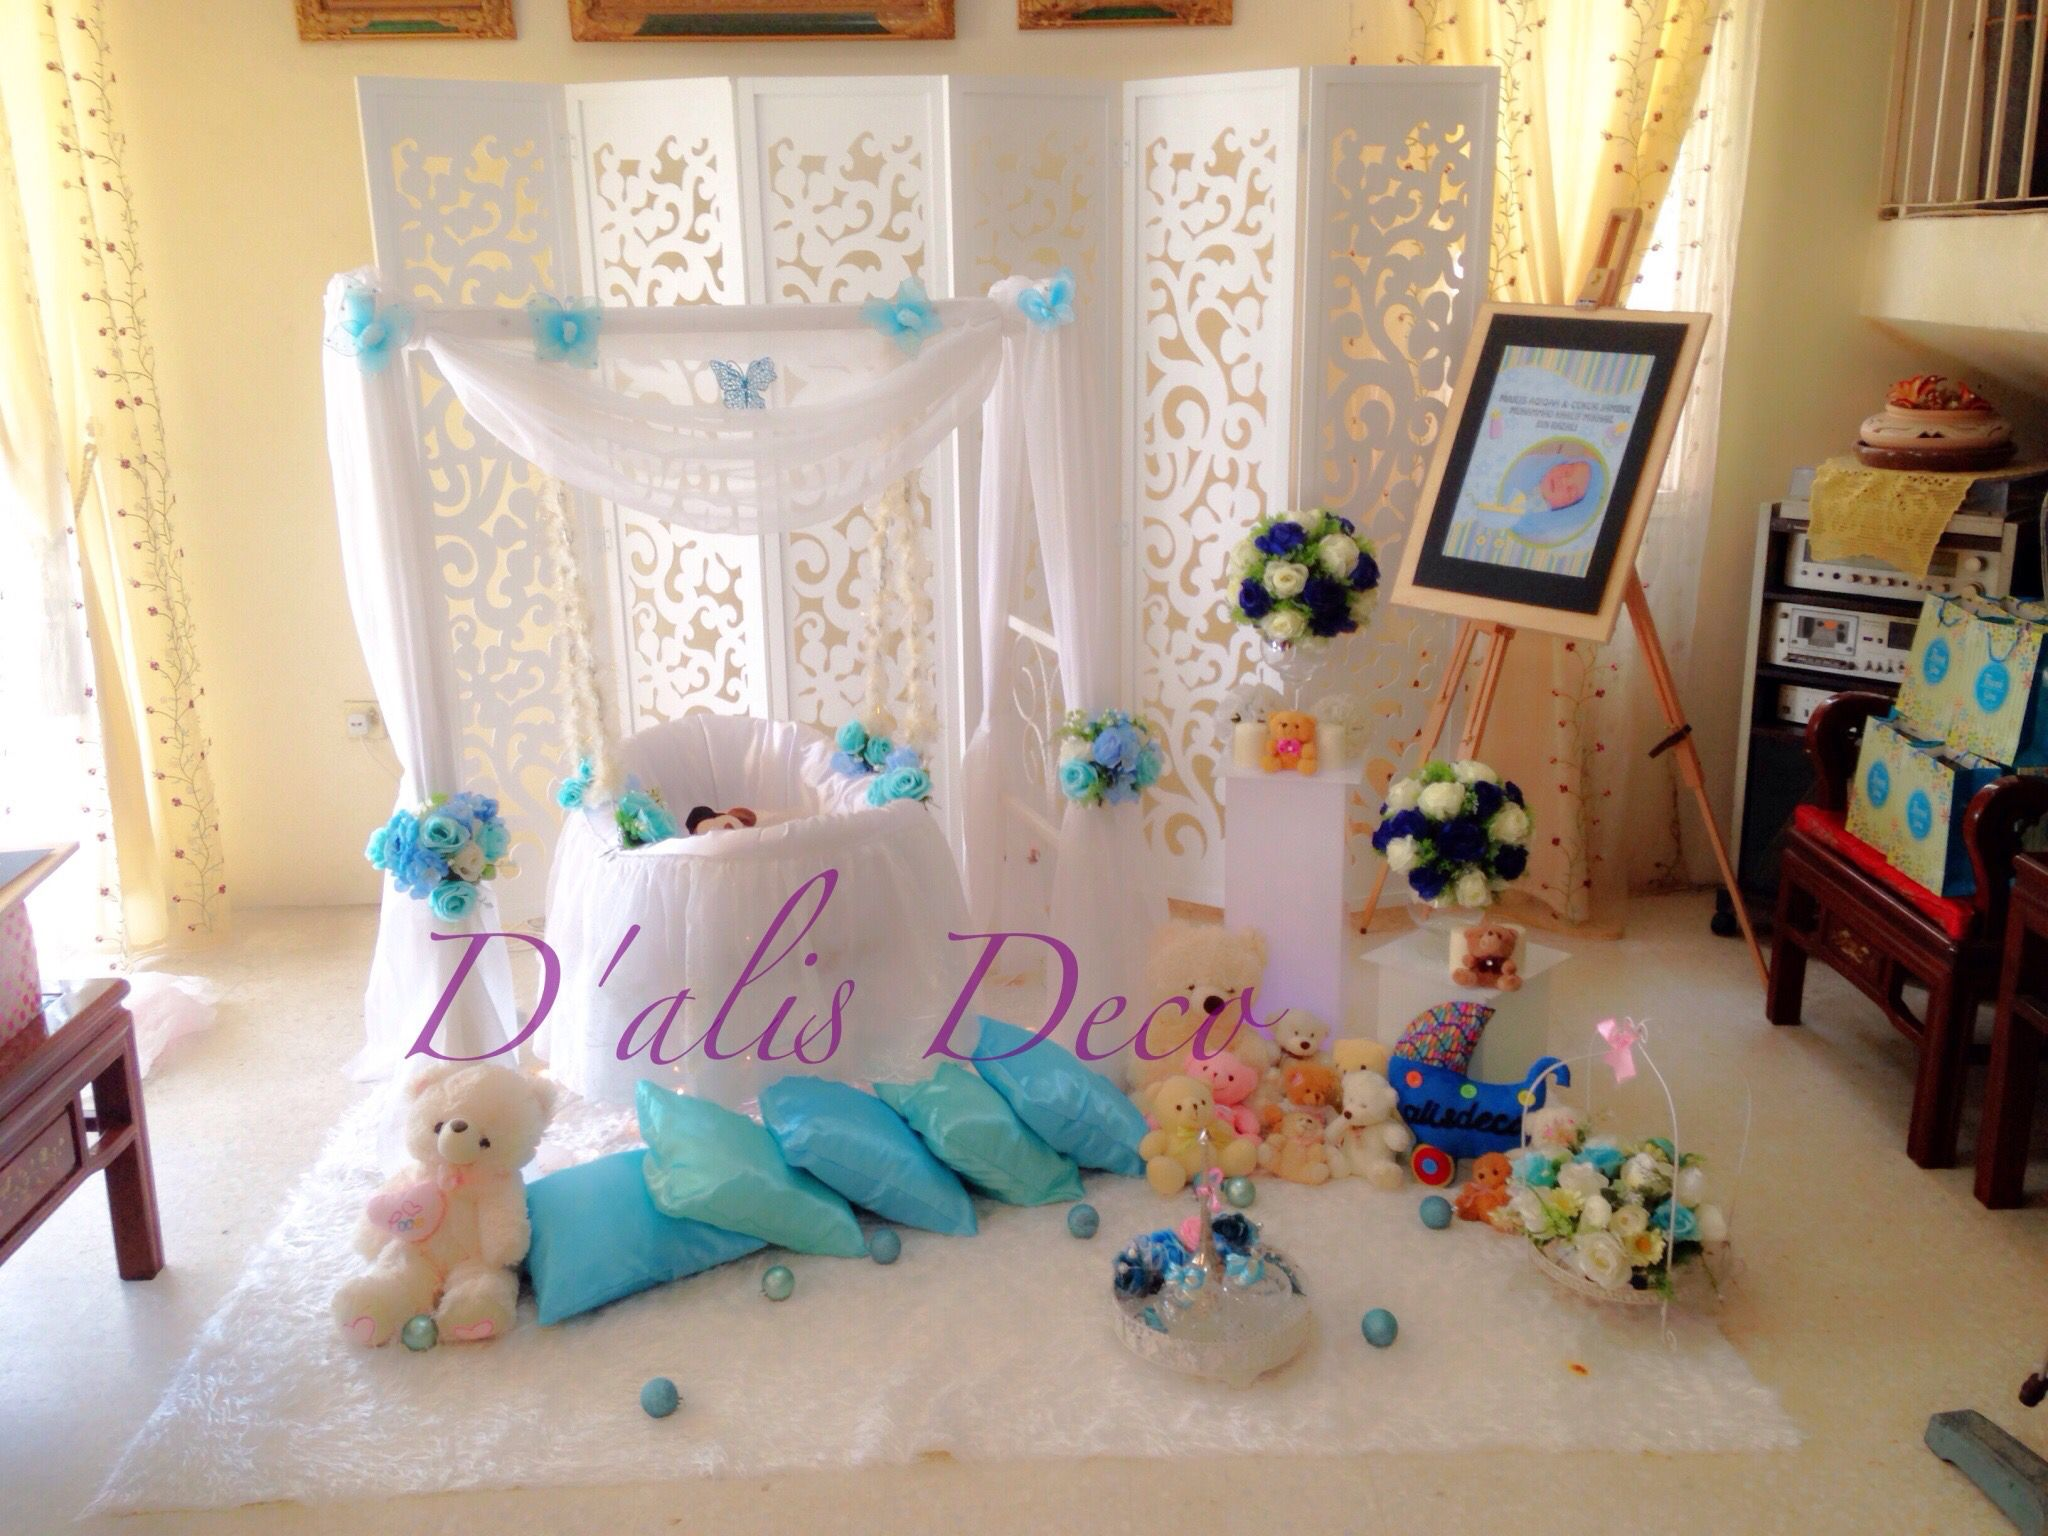 Simple Ceremony Decorations: Simple And Simple Deco Buaian Berendoi For Baby Boy